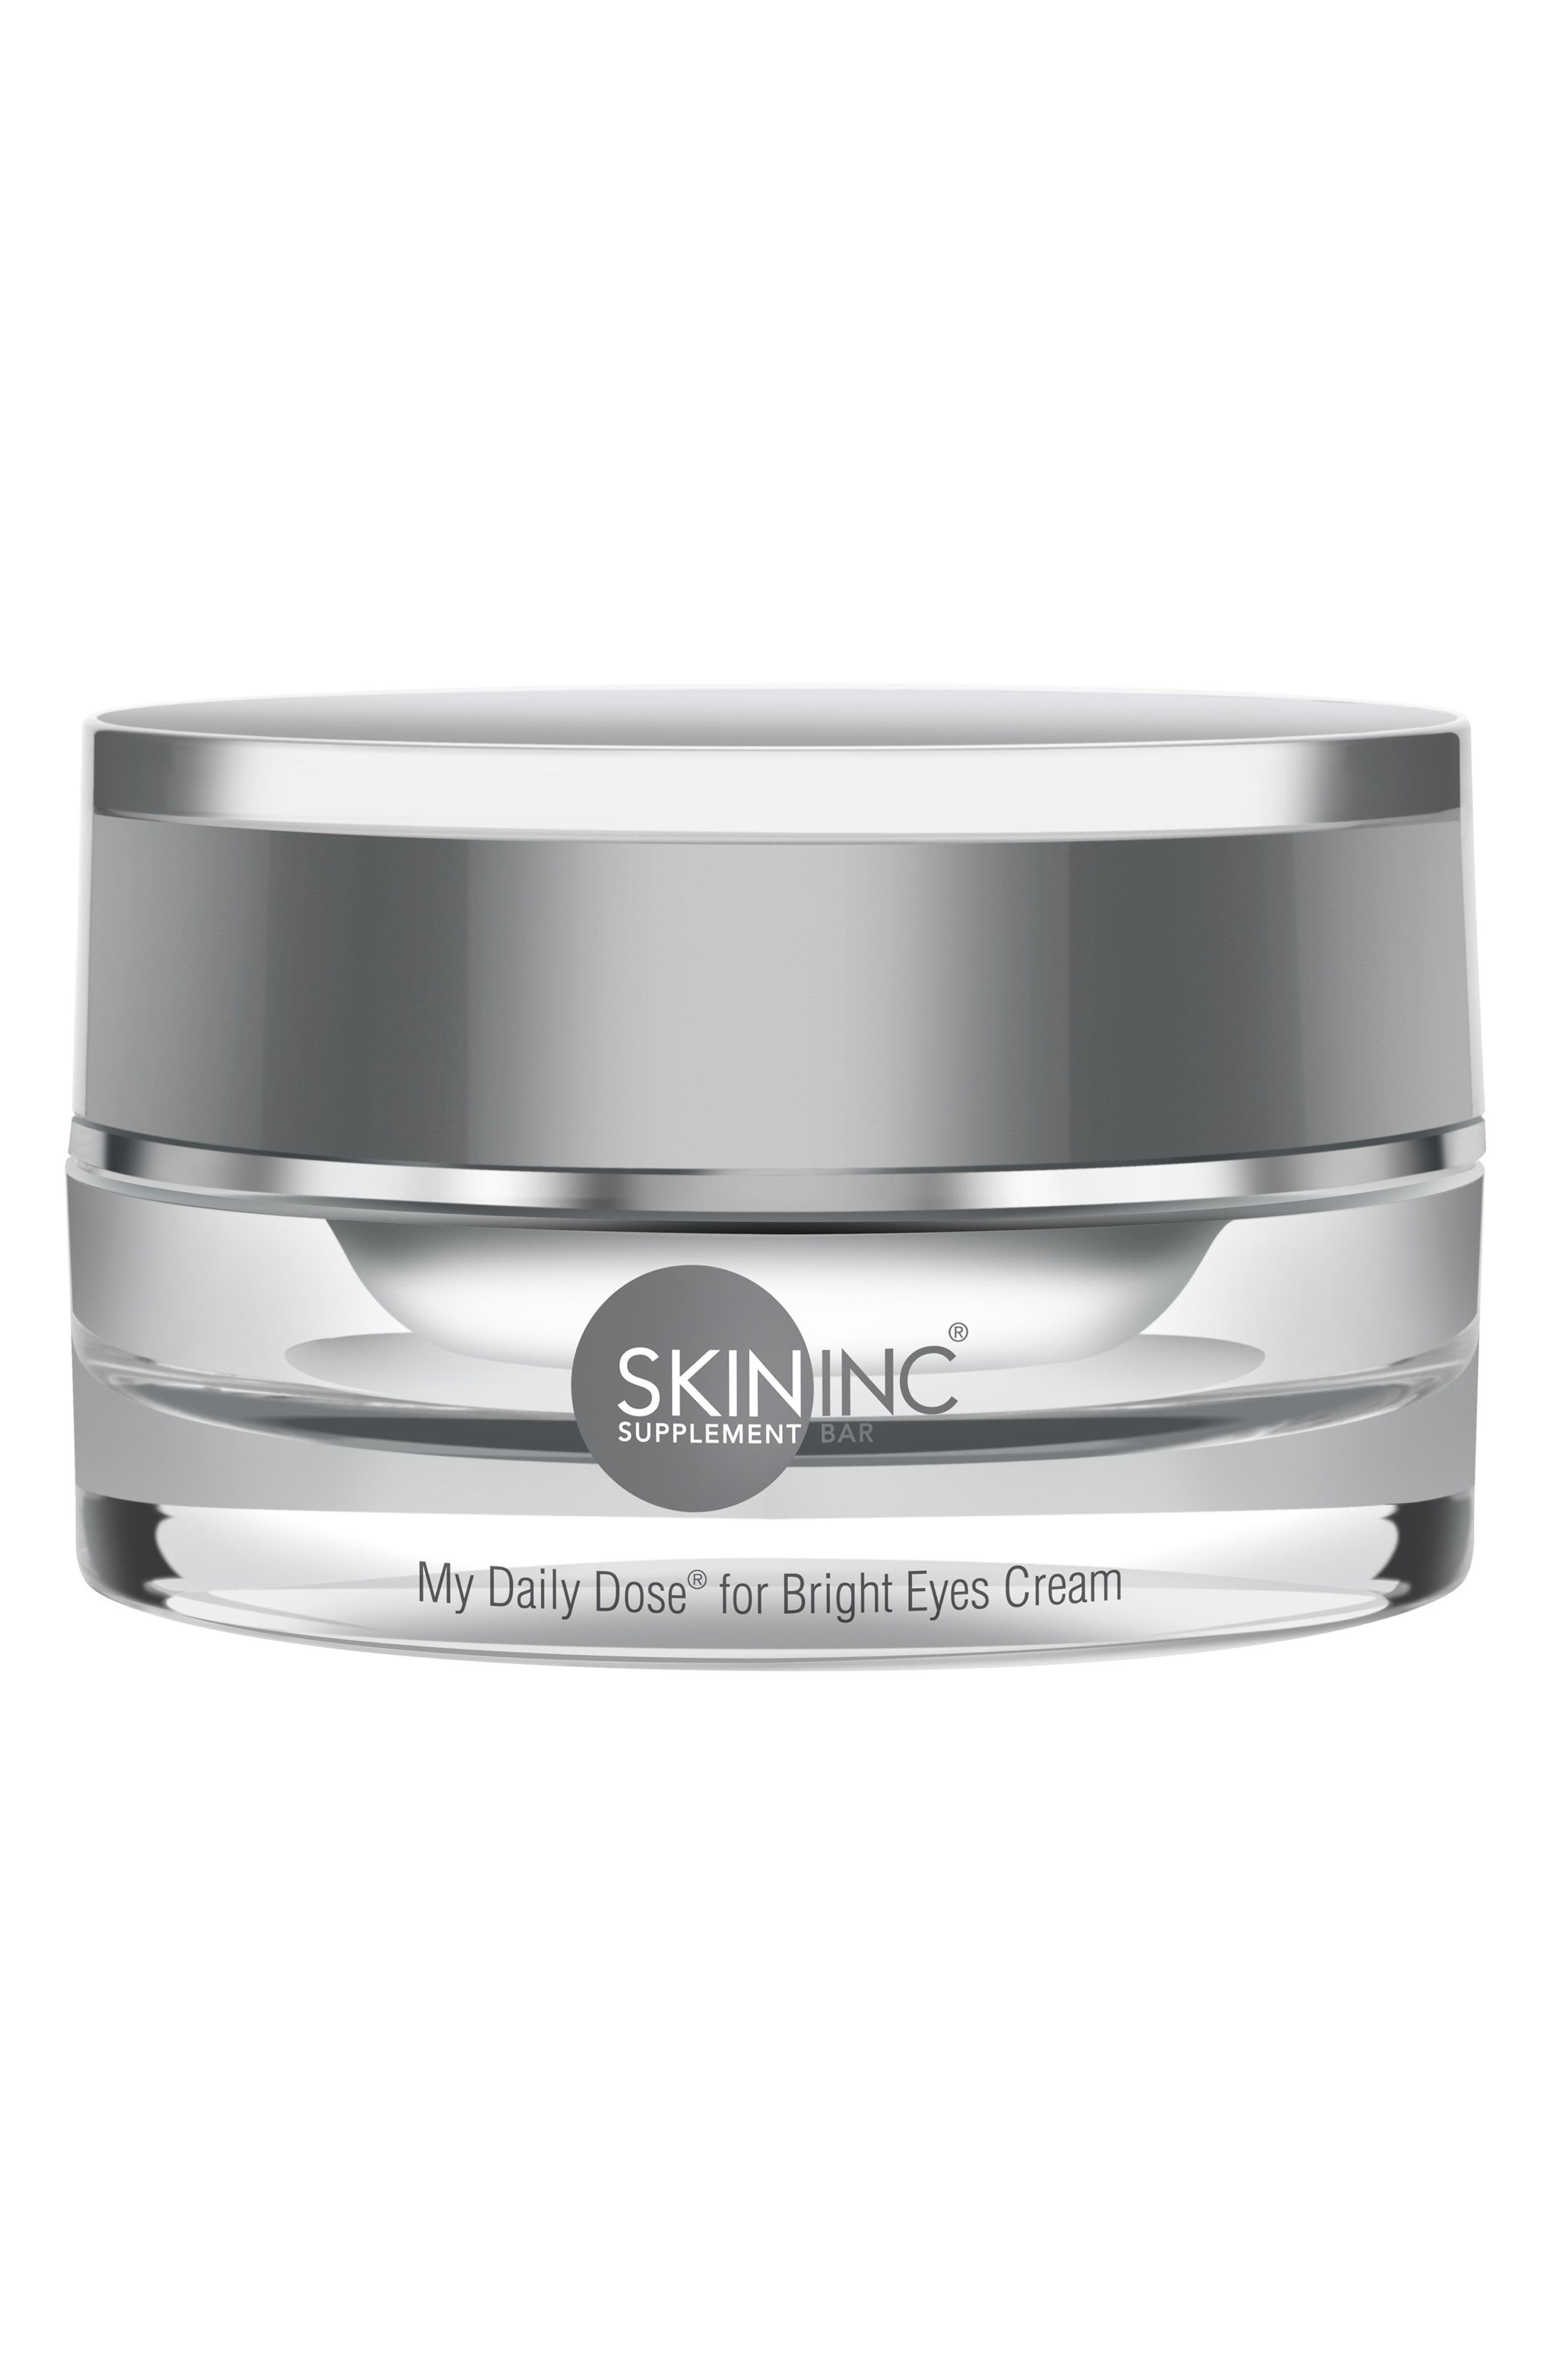 Image of Skin Inc My Daily Dose for Bright Eyes Cream